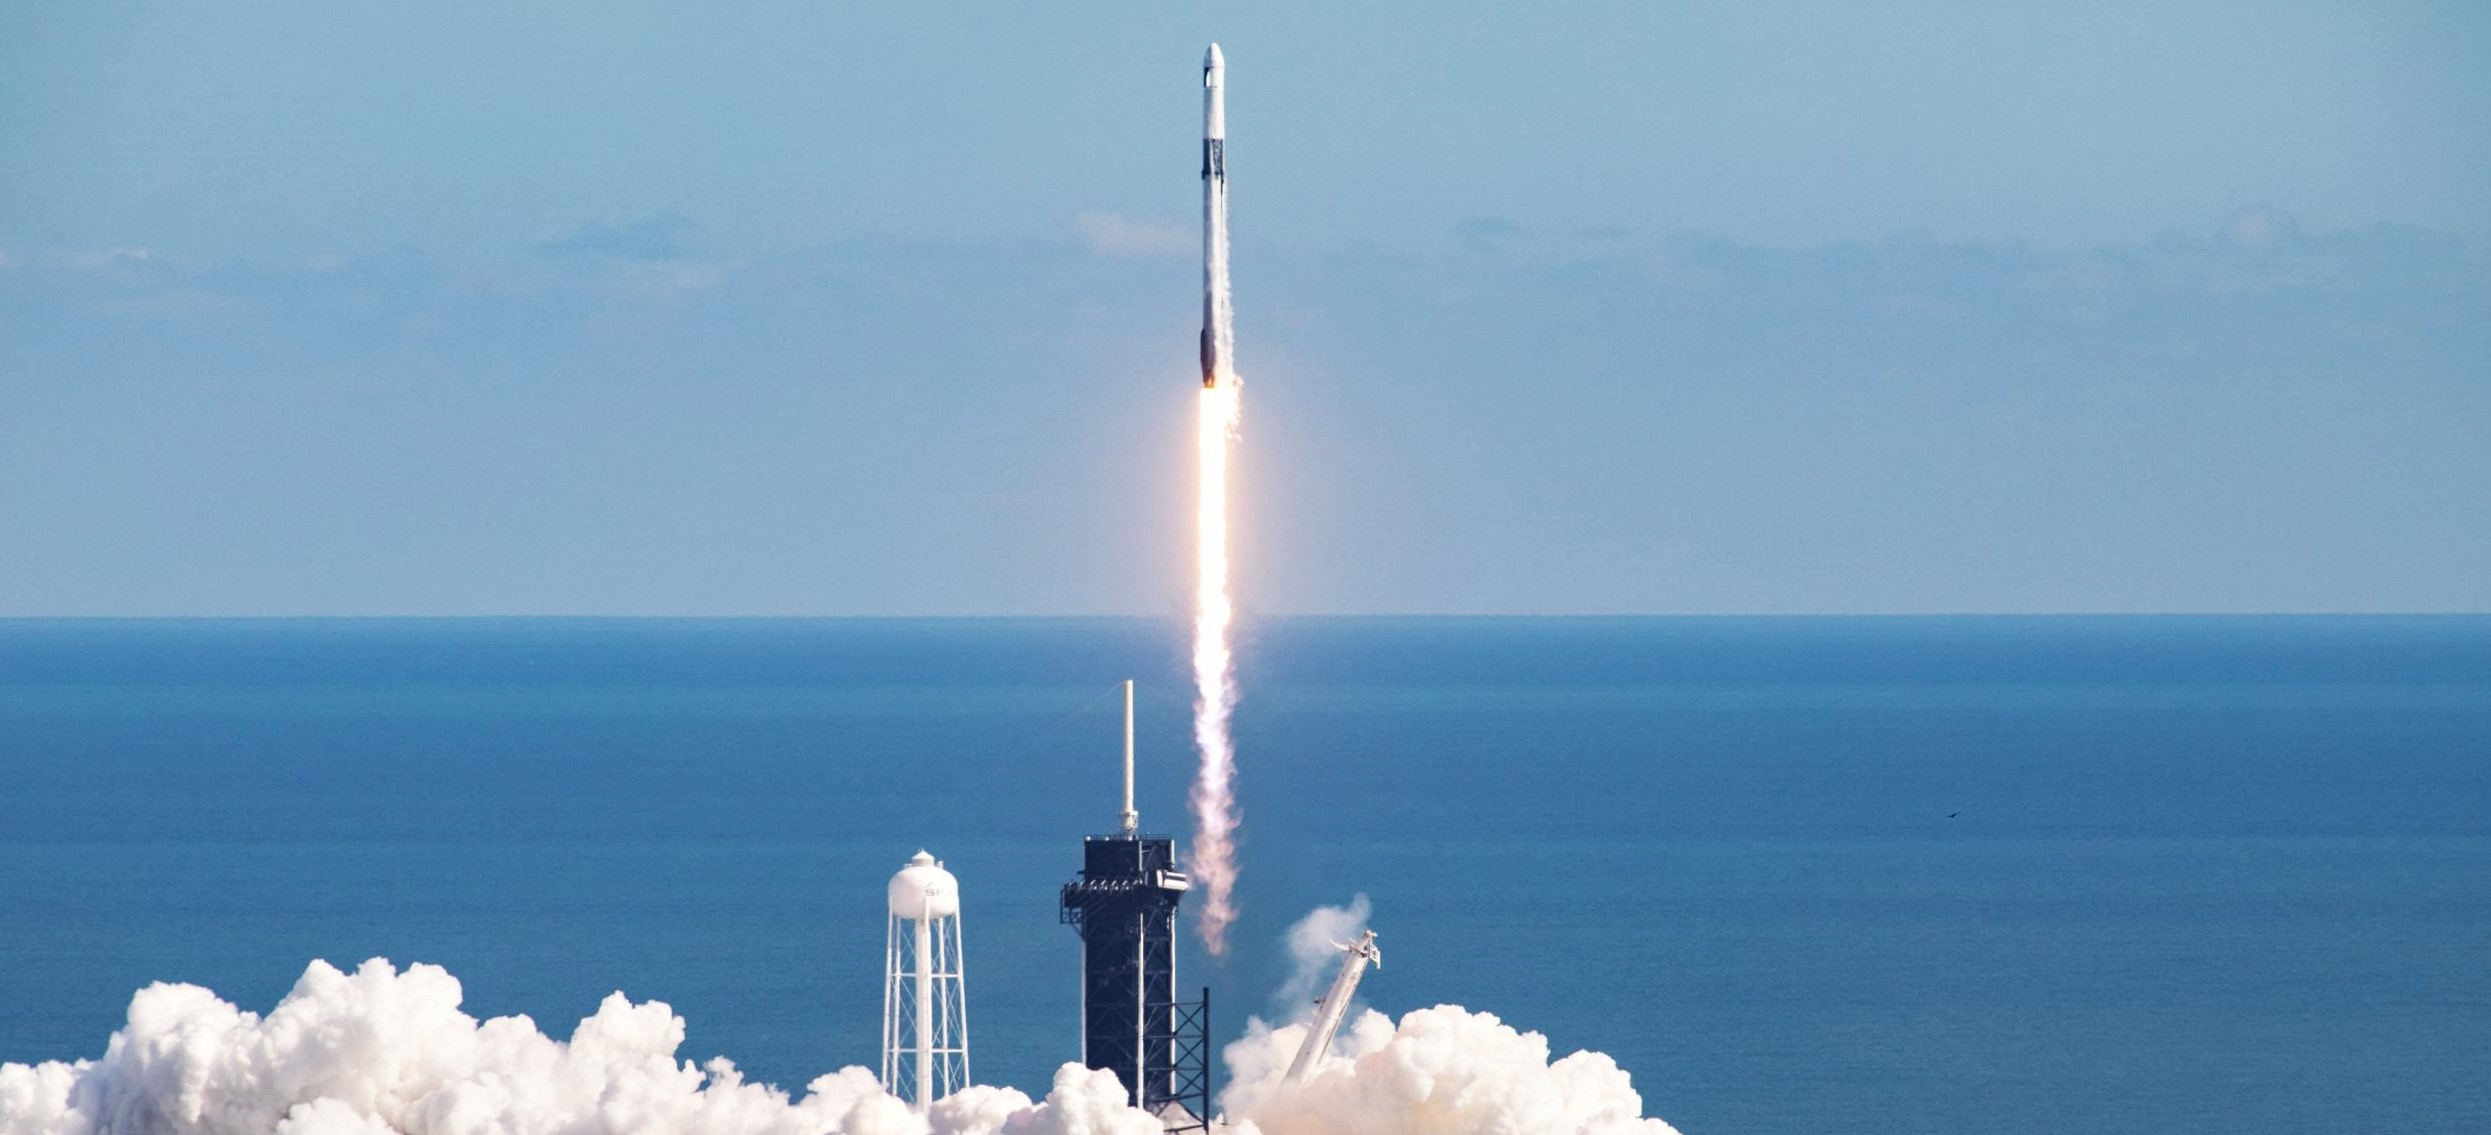 CRS-21 Cargo Dragon 2 Falcon 9 B1058 120620 launch (NASA) 1 crop